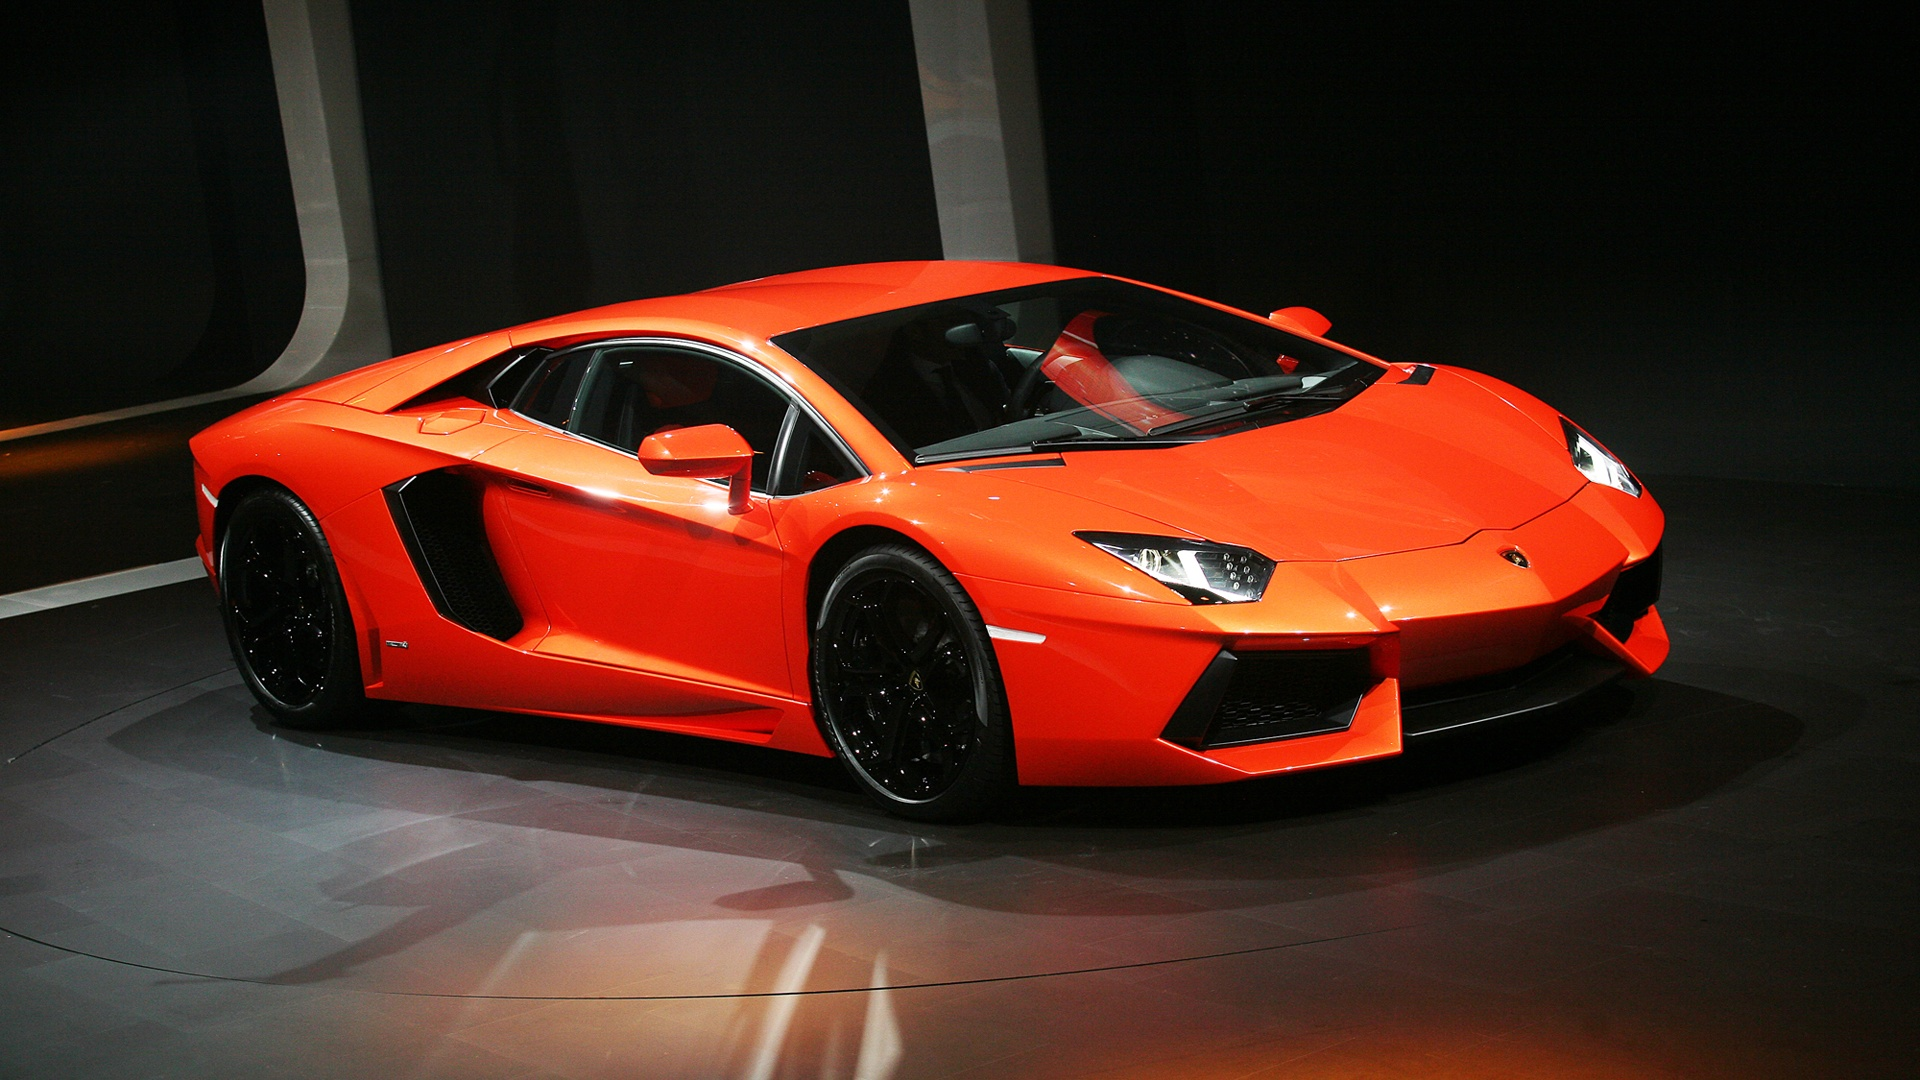 Lamborghini Aventador Wallpaper Car Wallpaper HD Desktop Wallpapers 1920x1080